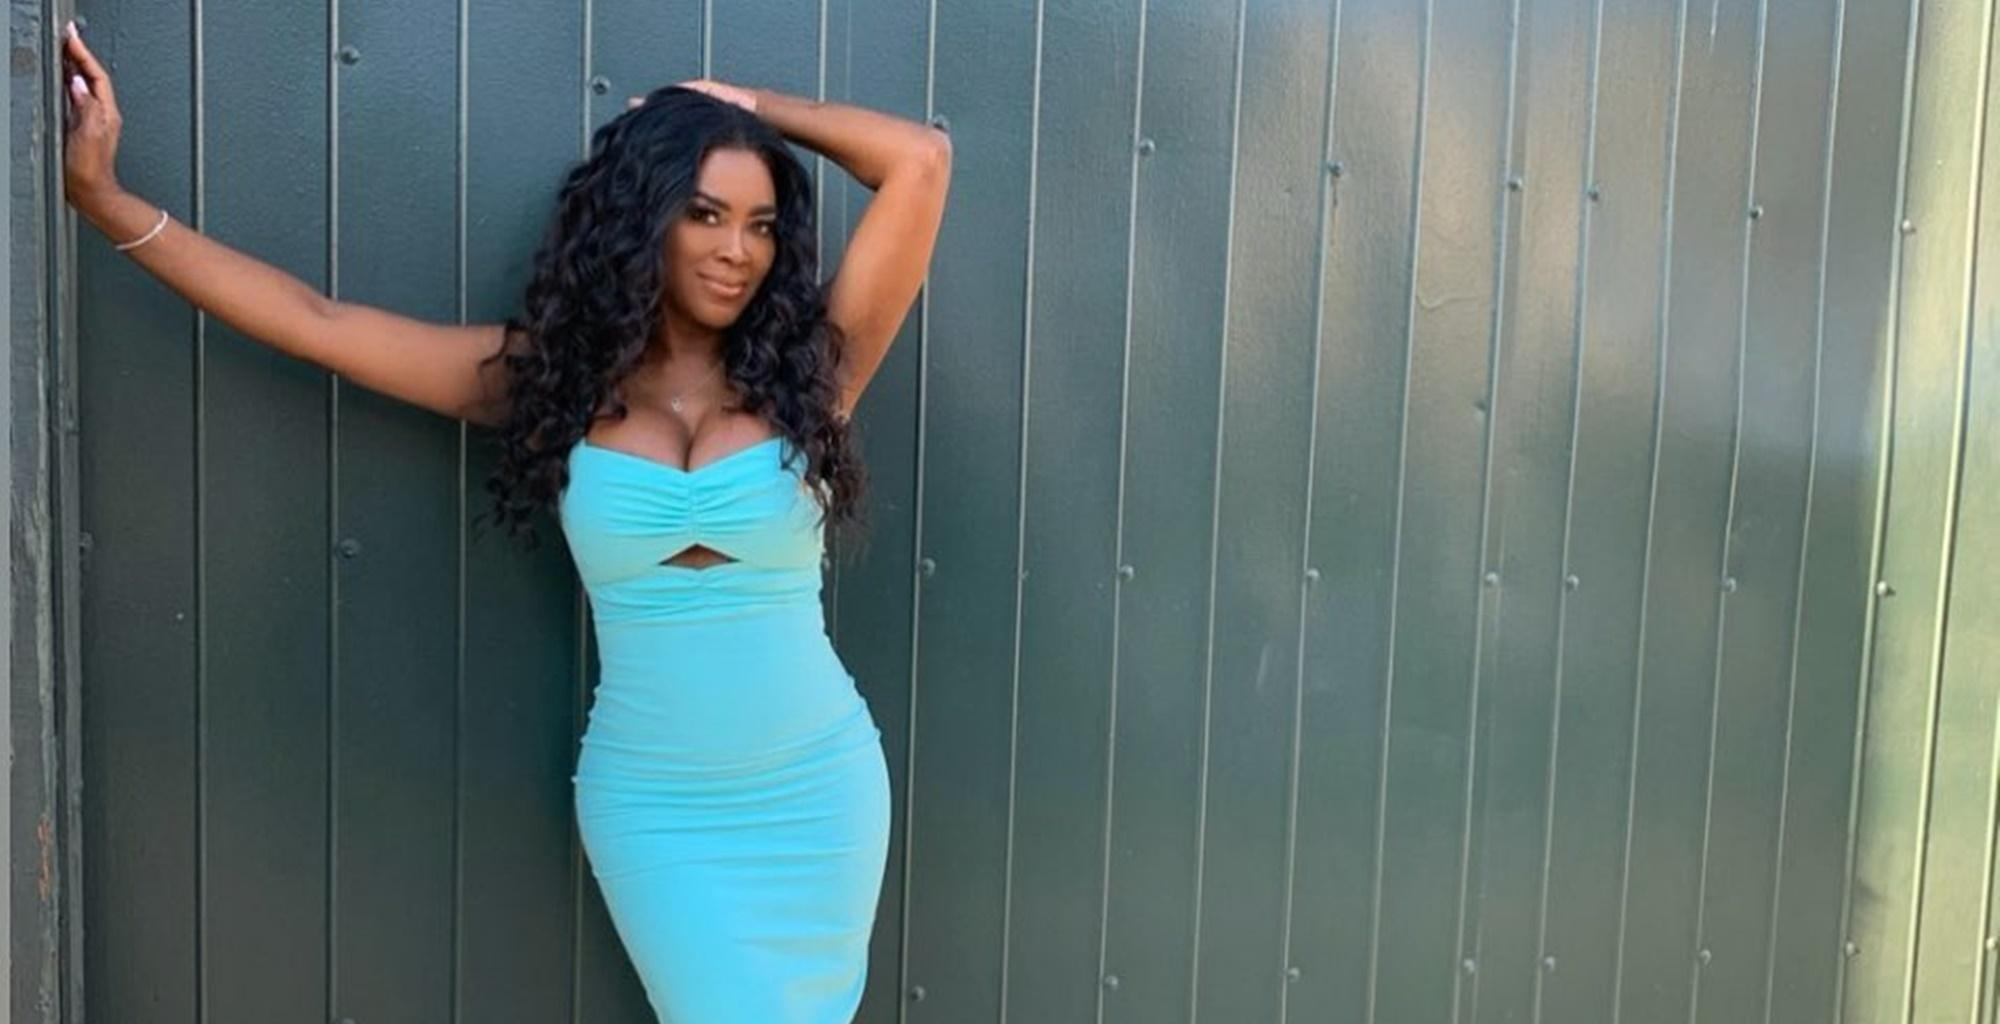 Kenya Moore Slays In Tight Dress Picture And Reveals If She Is Thinner After Giving Birth To Baby Brooklyn